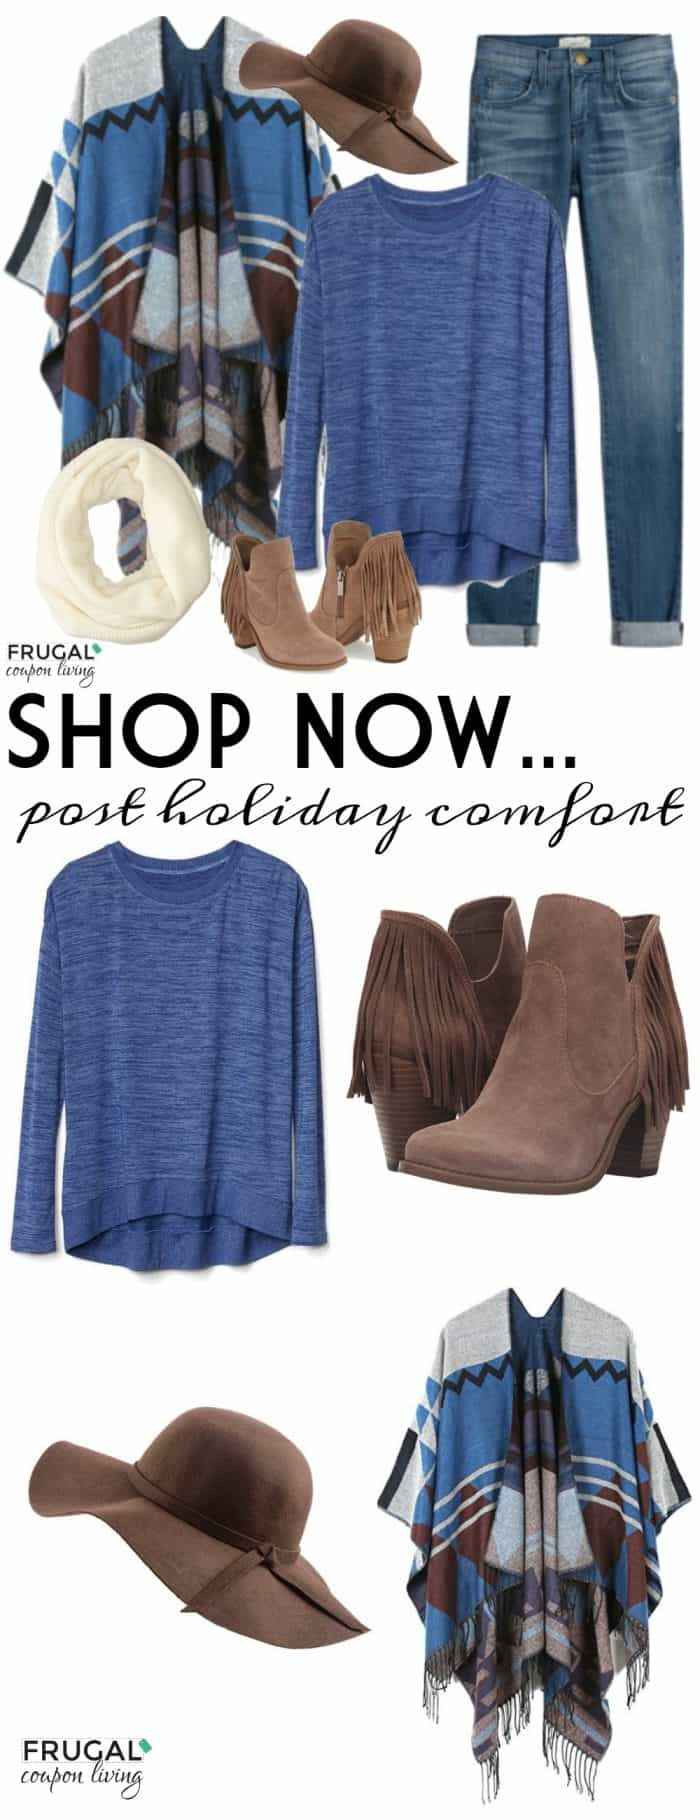 post-holiday-comfort-outfit-frugal-coupon-living-frugal-fashion-friday-long